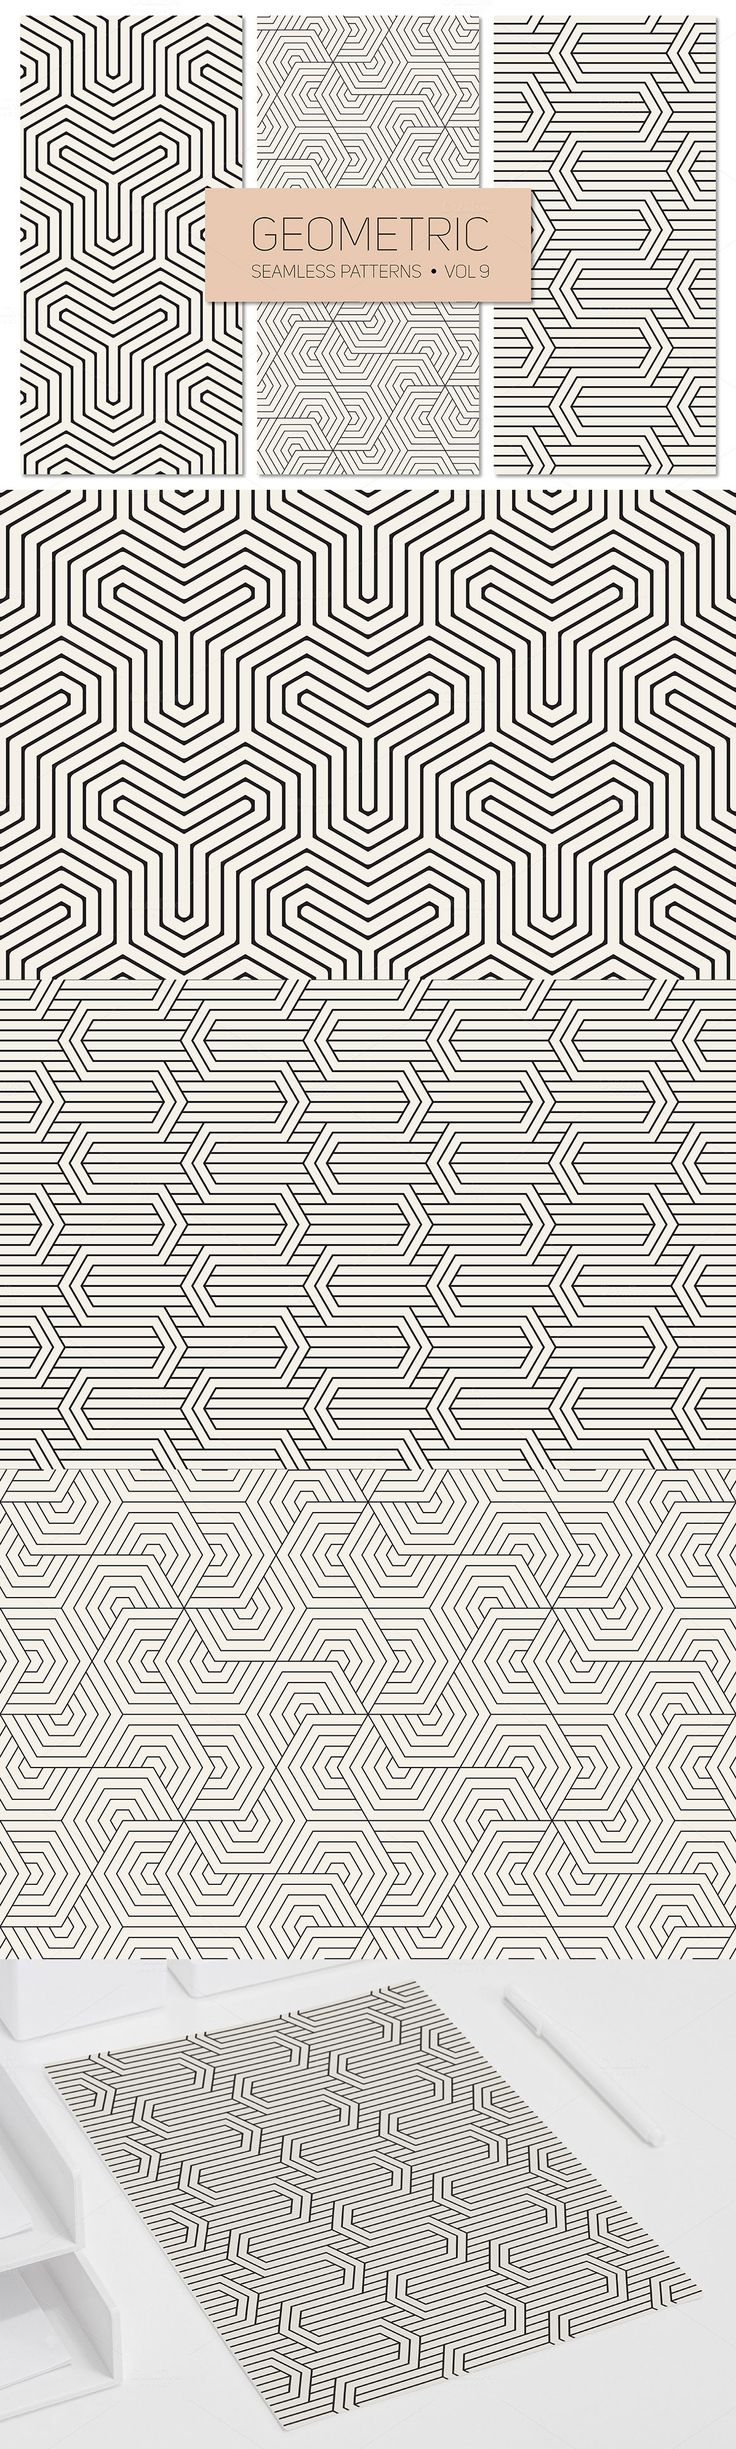 #Free #Geometric Seamless #Patterns